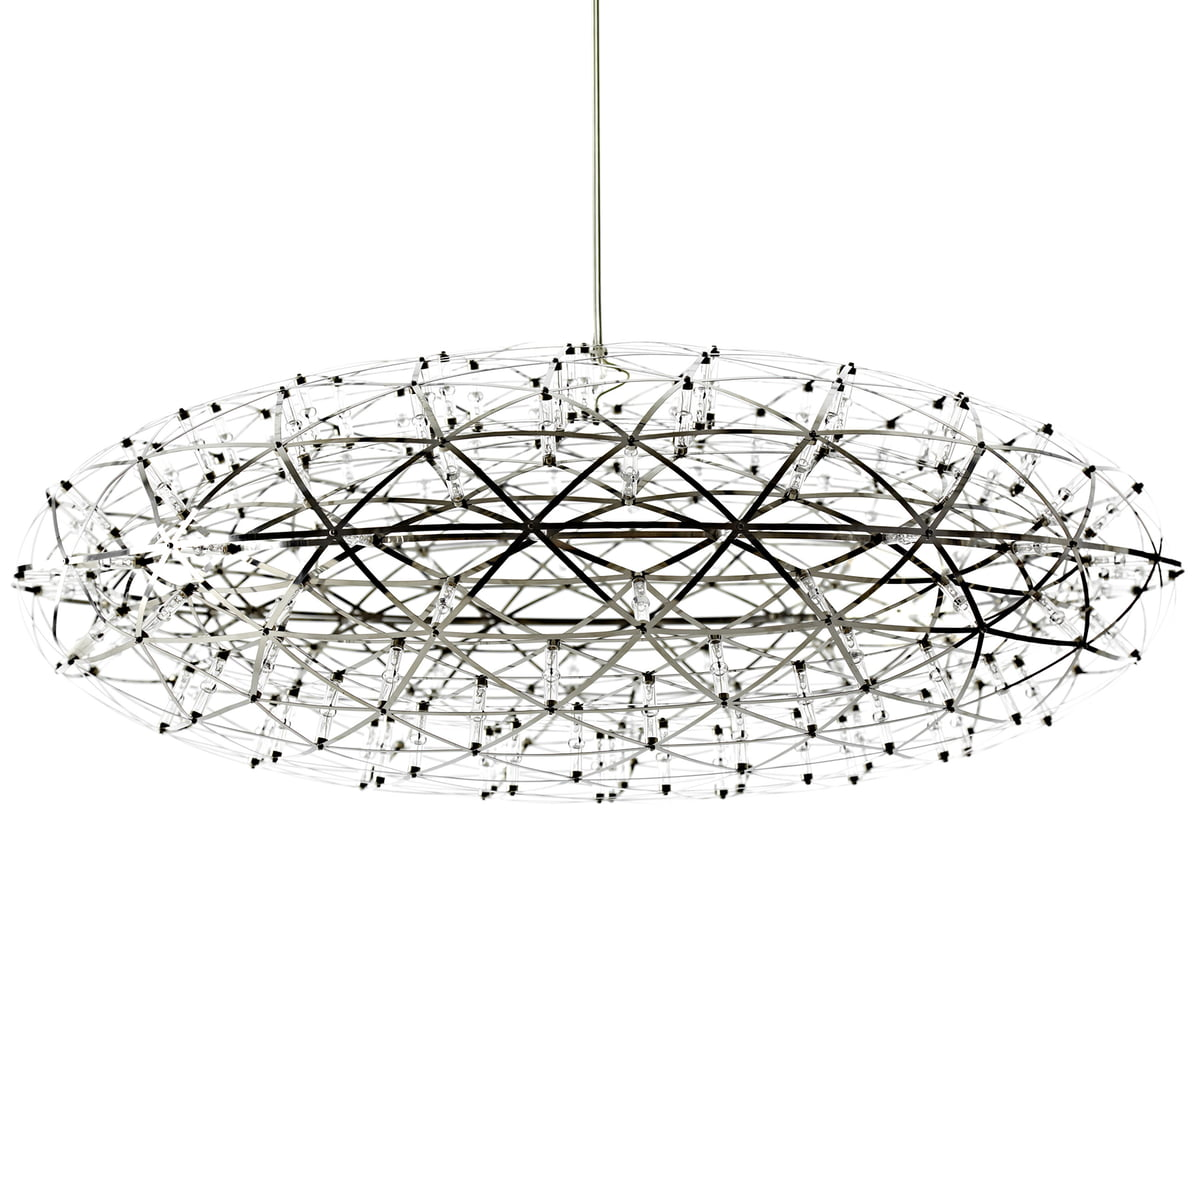 Raimond Zafu Suspension Lamp by Moooi in the shop for Moooi Raimond Zafu  588gtk